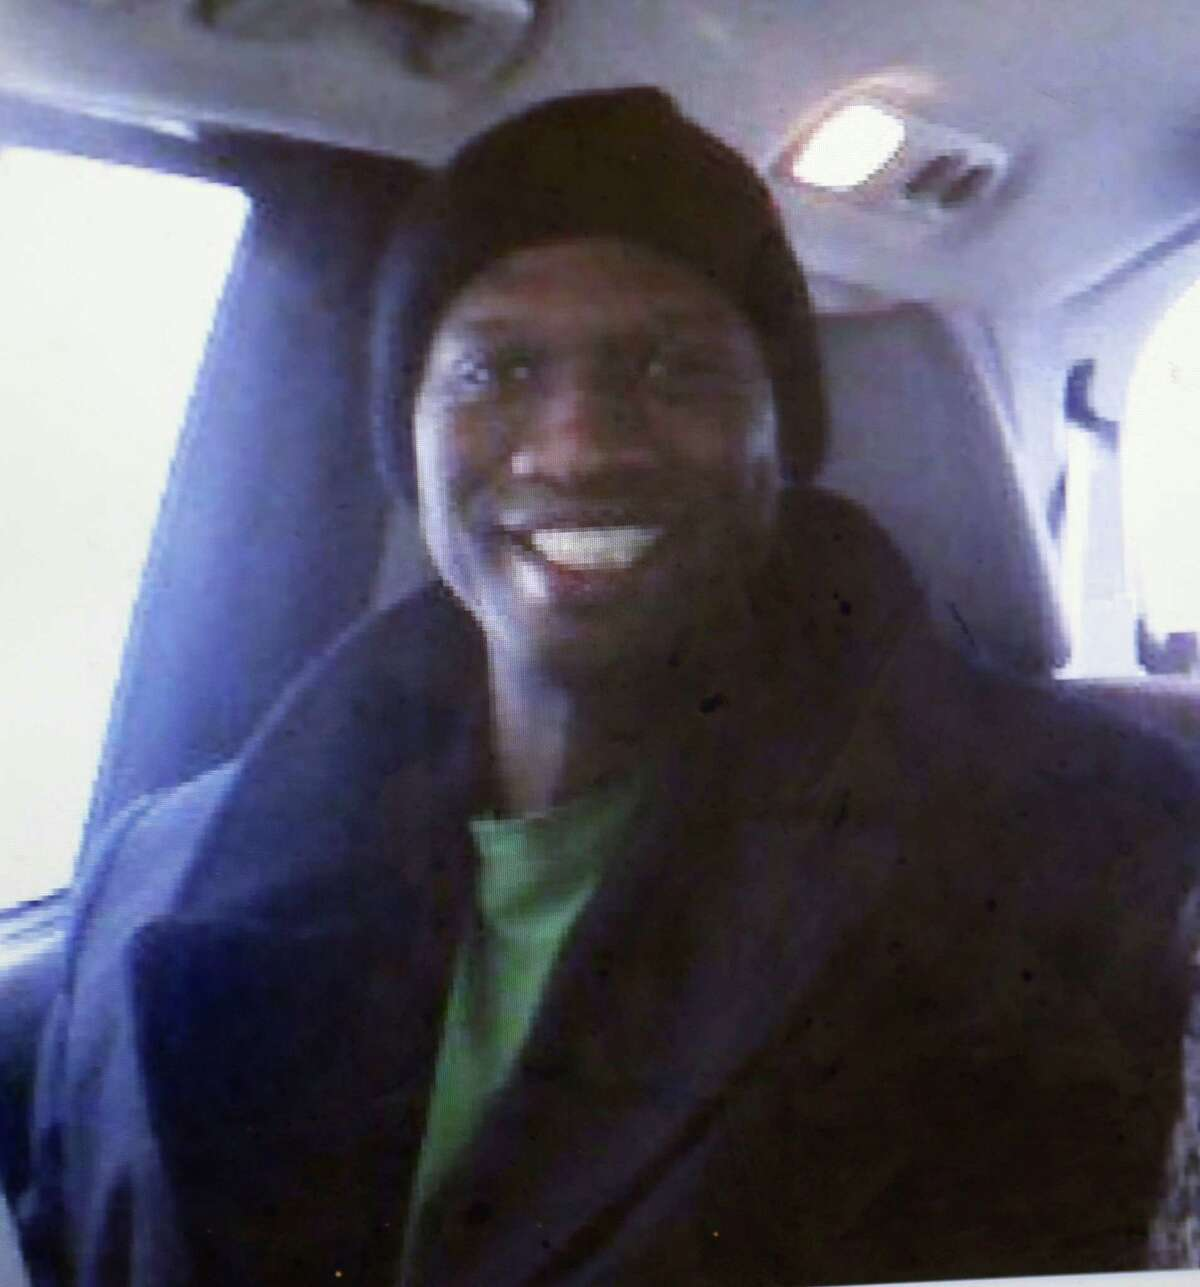 An undated cellphone photo provided by Kristi Suthamtewakul shows Aaron Alexis when he lived in Fort Worth.